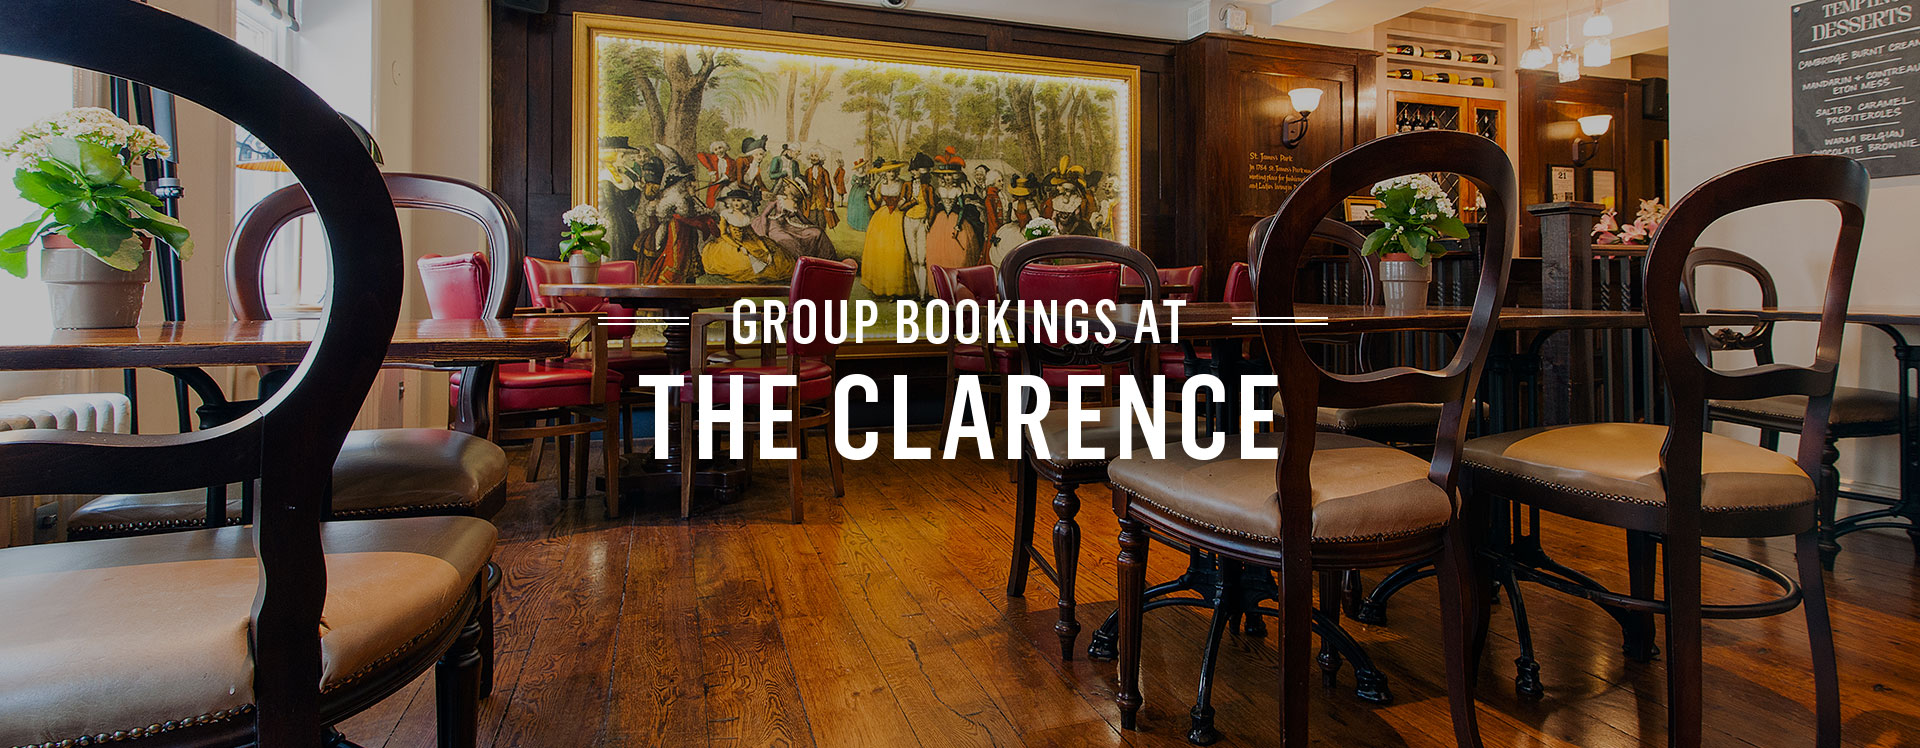 Group Bookings at The Clarence